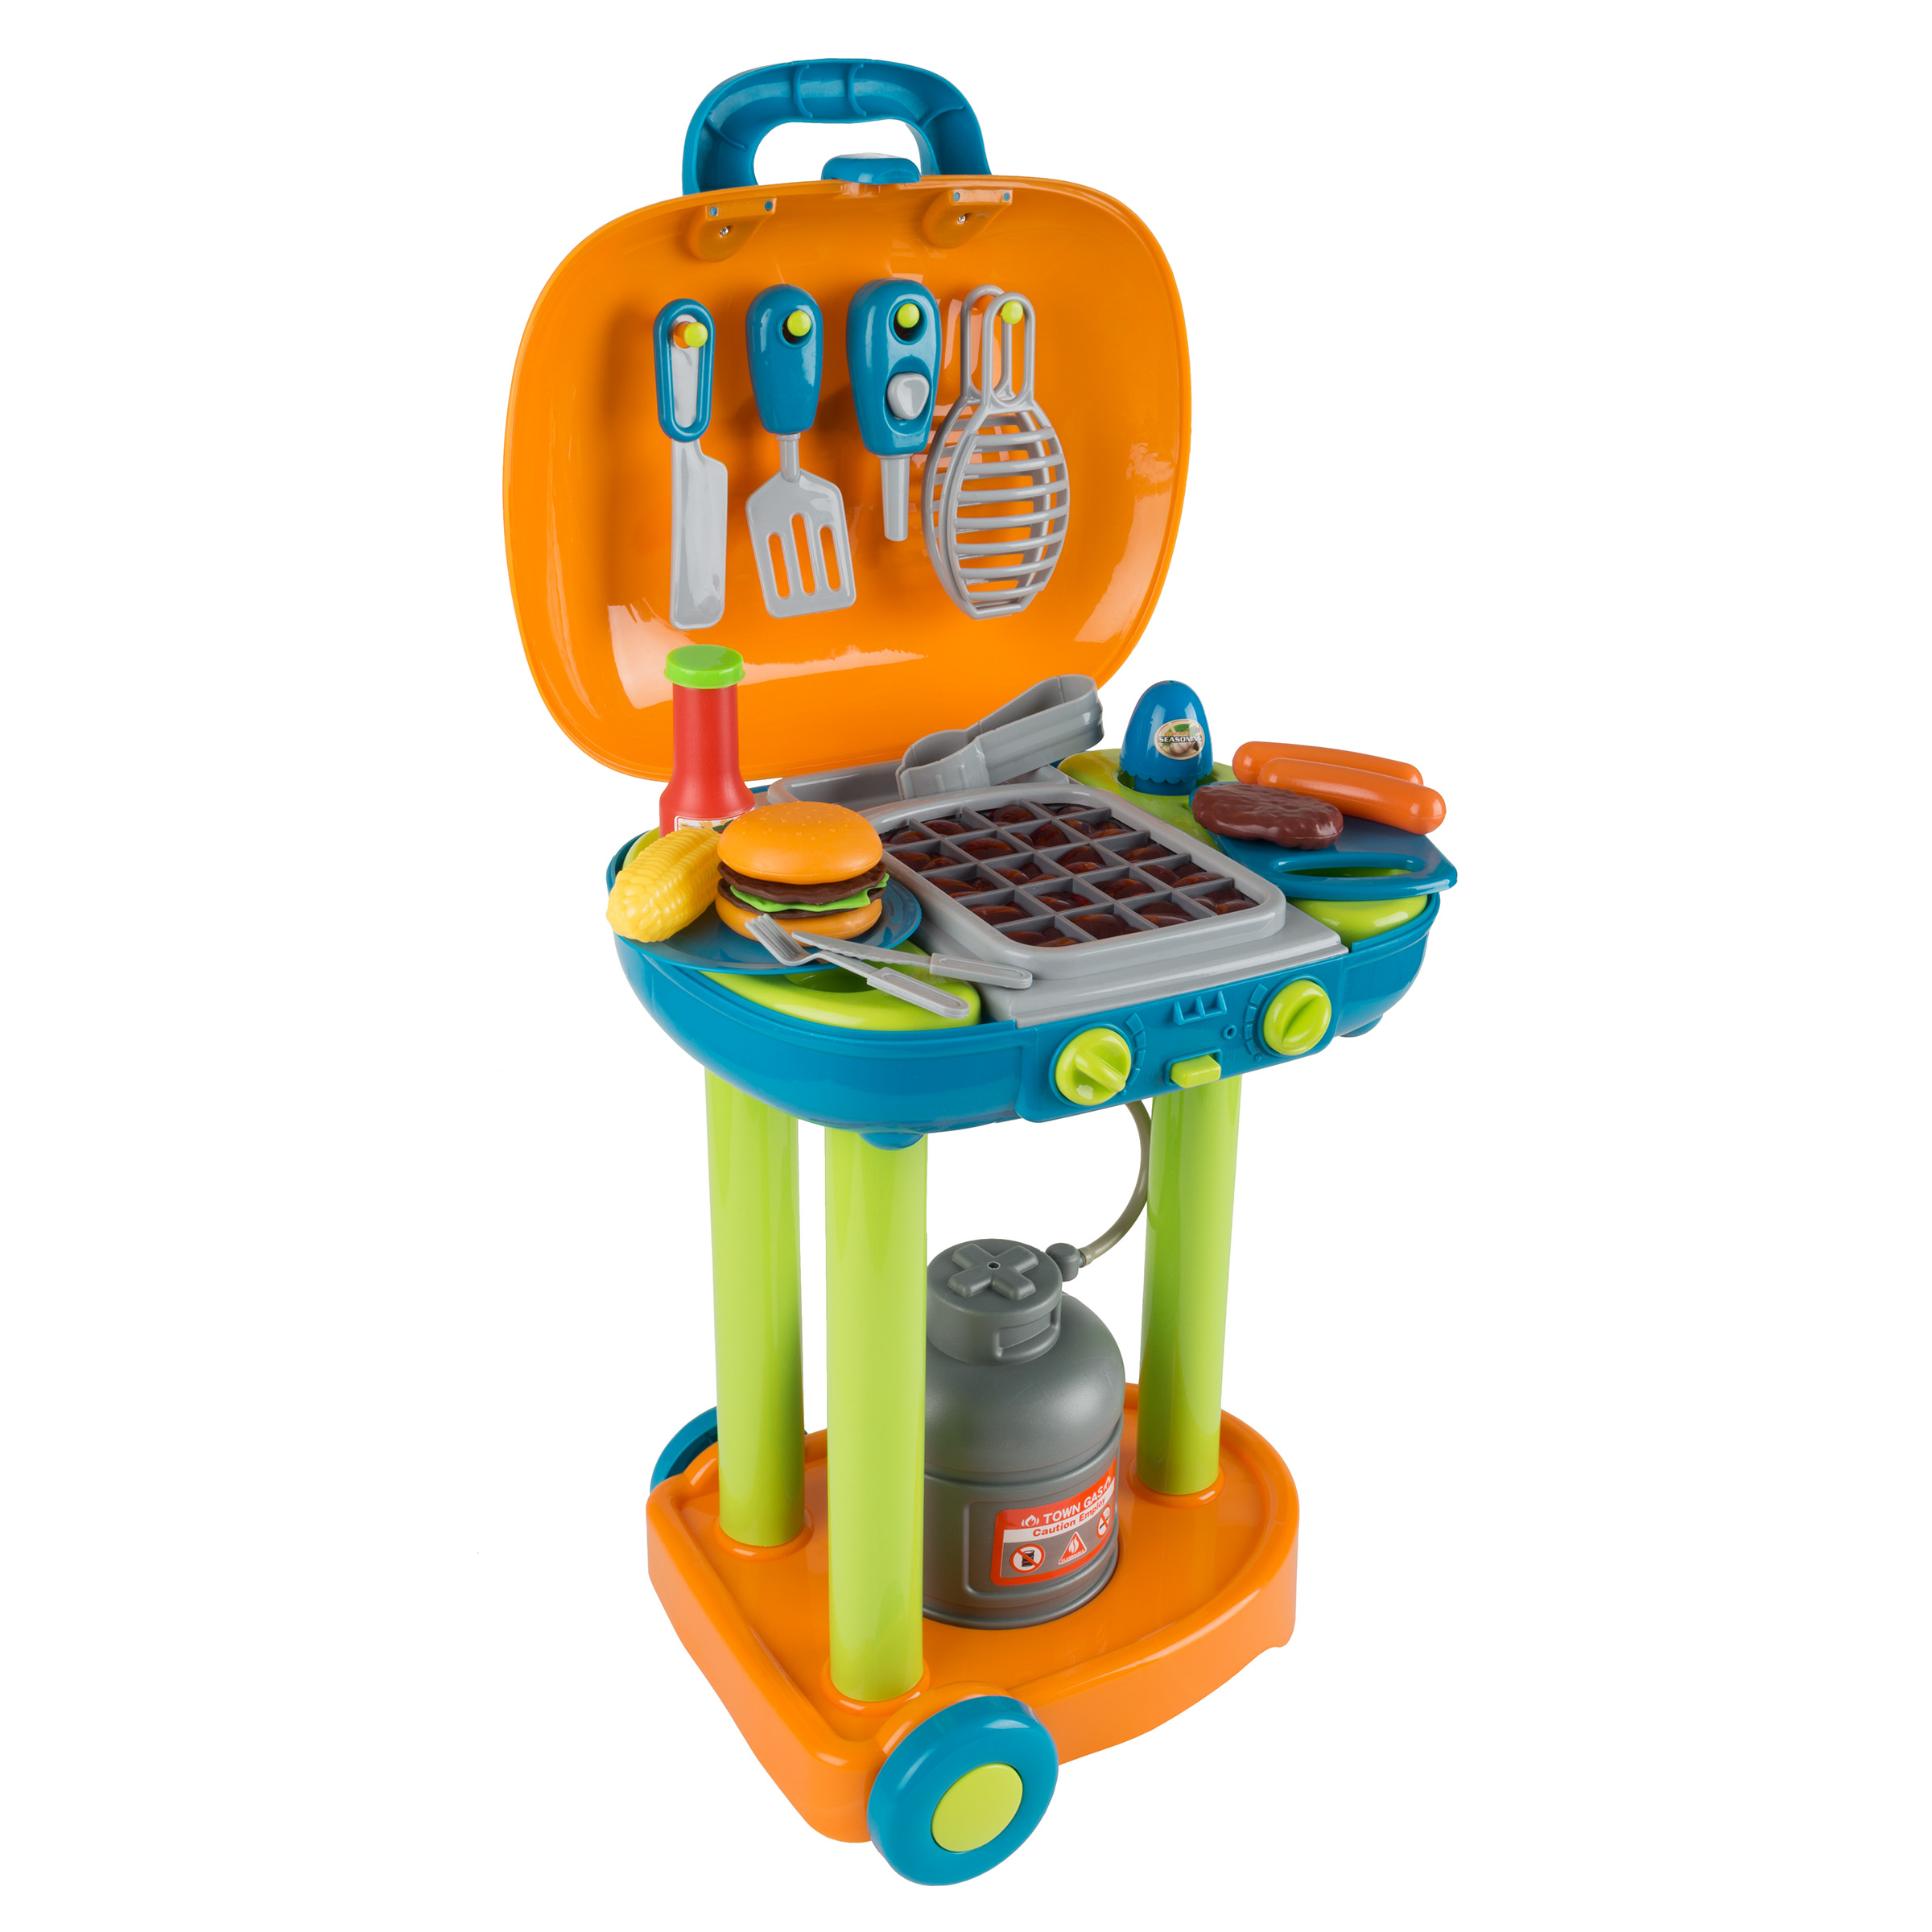 BBQ Grill Toy Set- Kids Dinner Playset with Realistic Sounds and Grate Lights- Includes Barbecue Food and Accessories, Pretend Kitchen by Hey! Play!